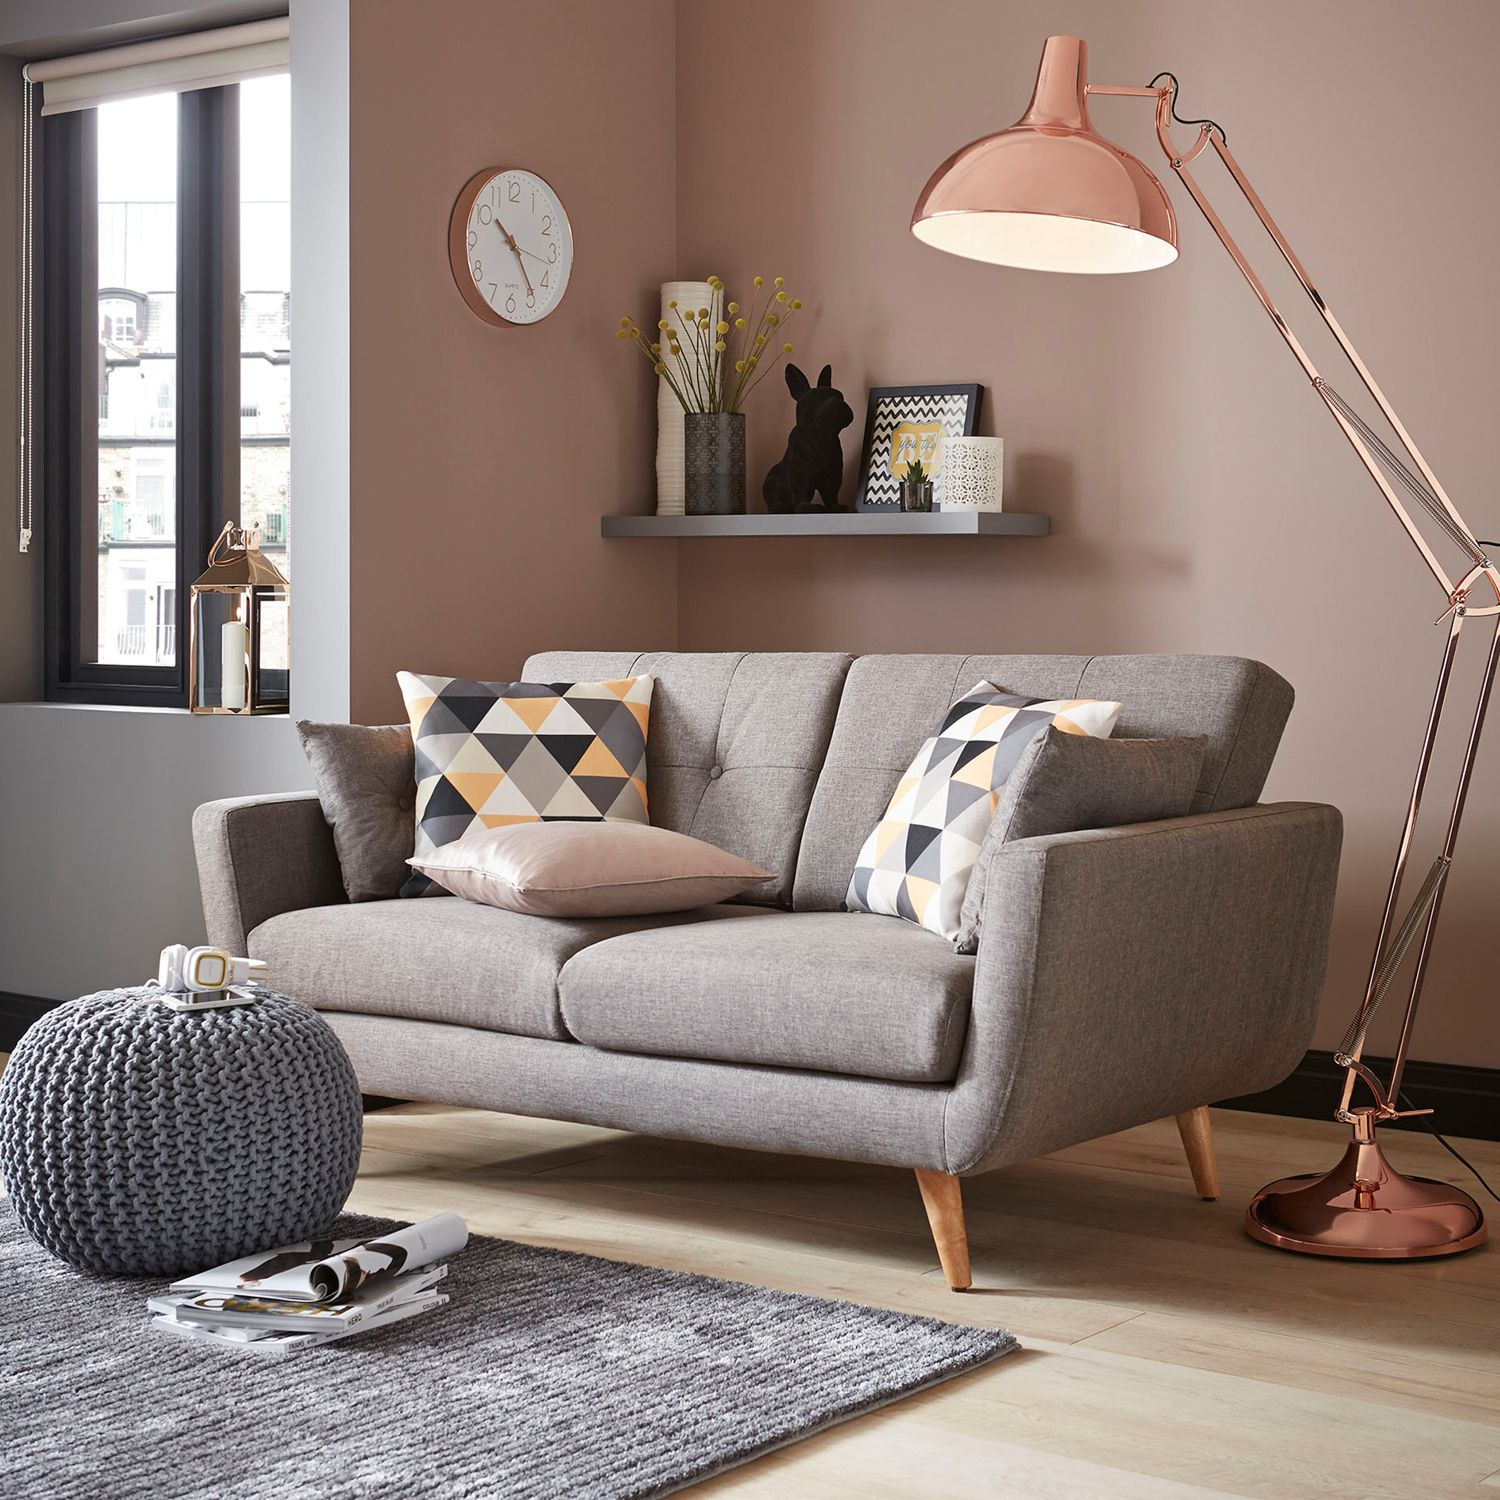 Enjoy the LOFT Malmo collection We love the Scandinavian